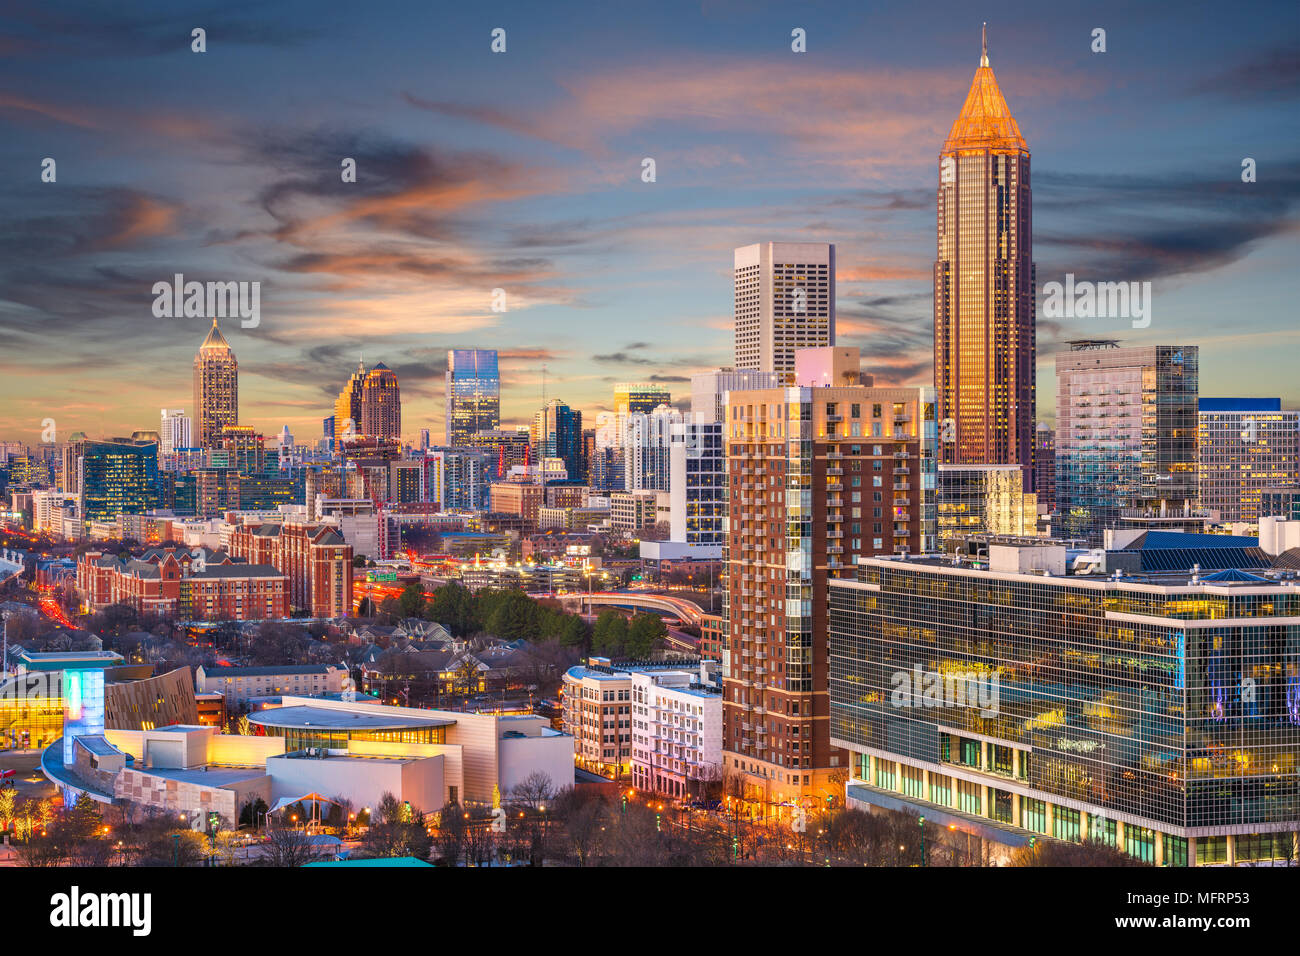 Atlanta, Georgia, USA downtown skyline. - Stock Image